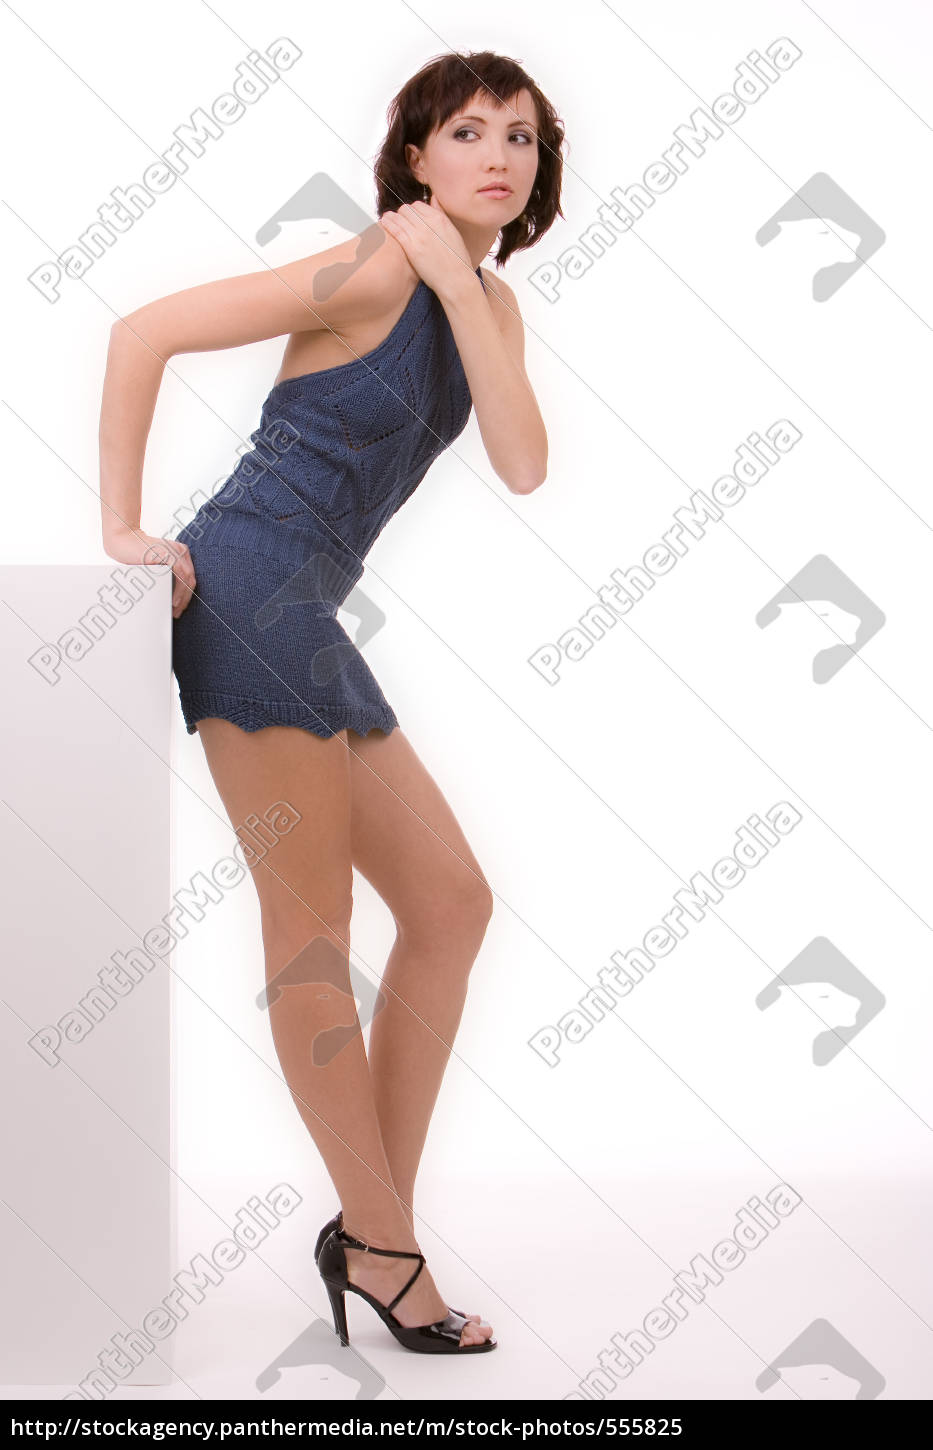 woman, minnikleid, and, high, heels, 2 - 555825